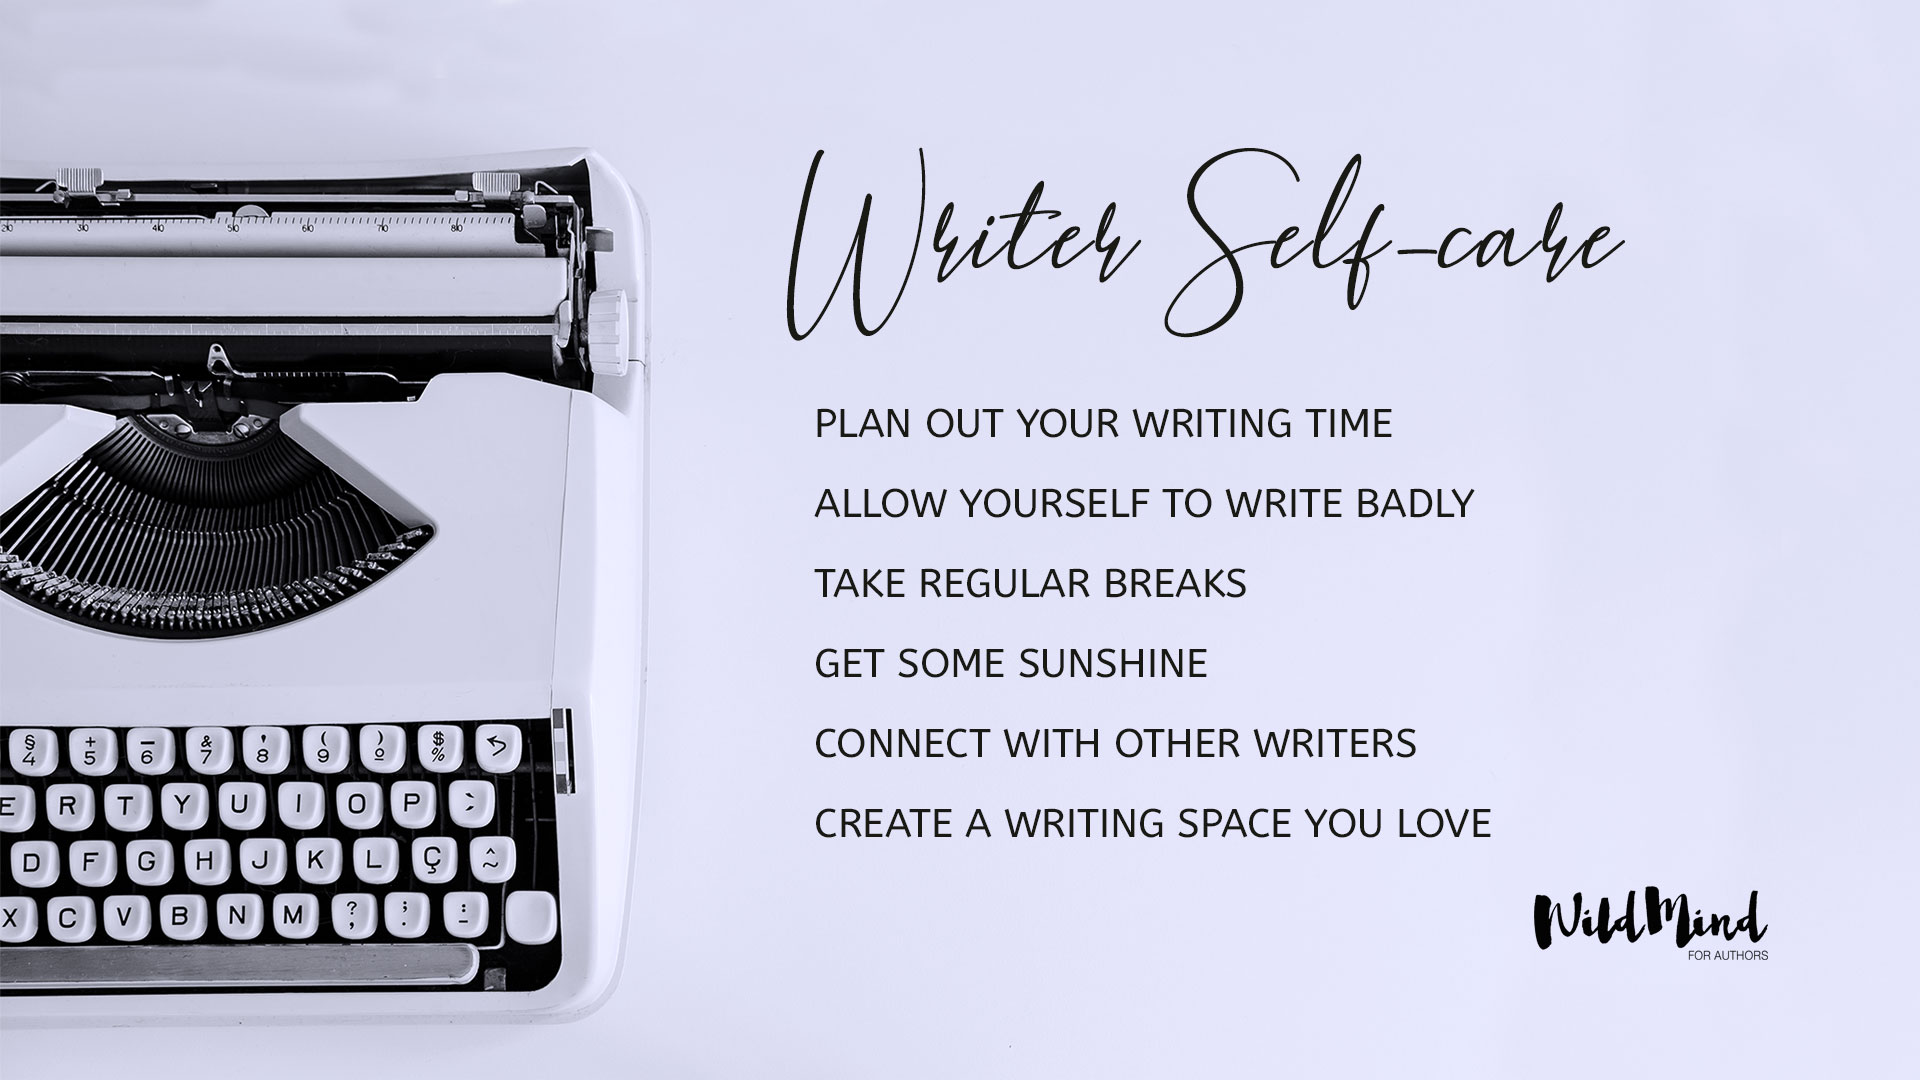 Writer self-care tips background